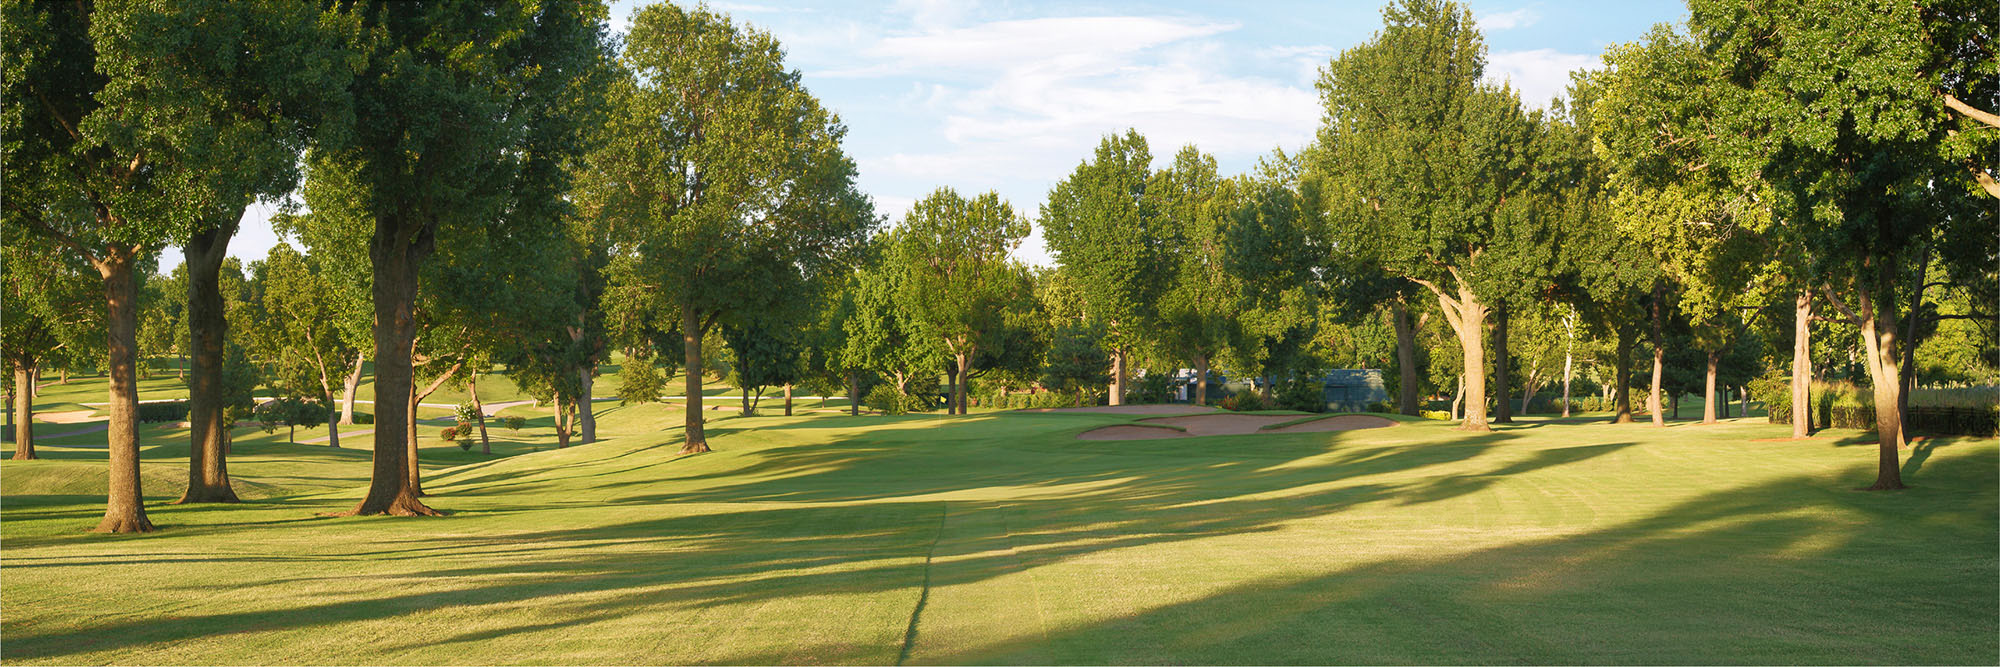 Golf Course Image - Cedar Ridge No. 13